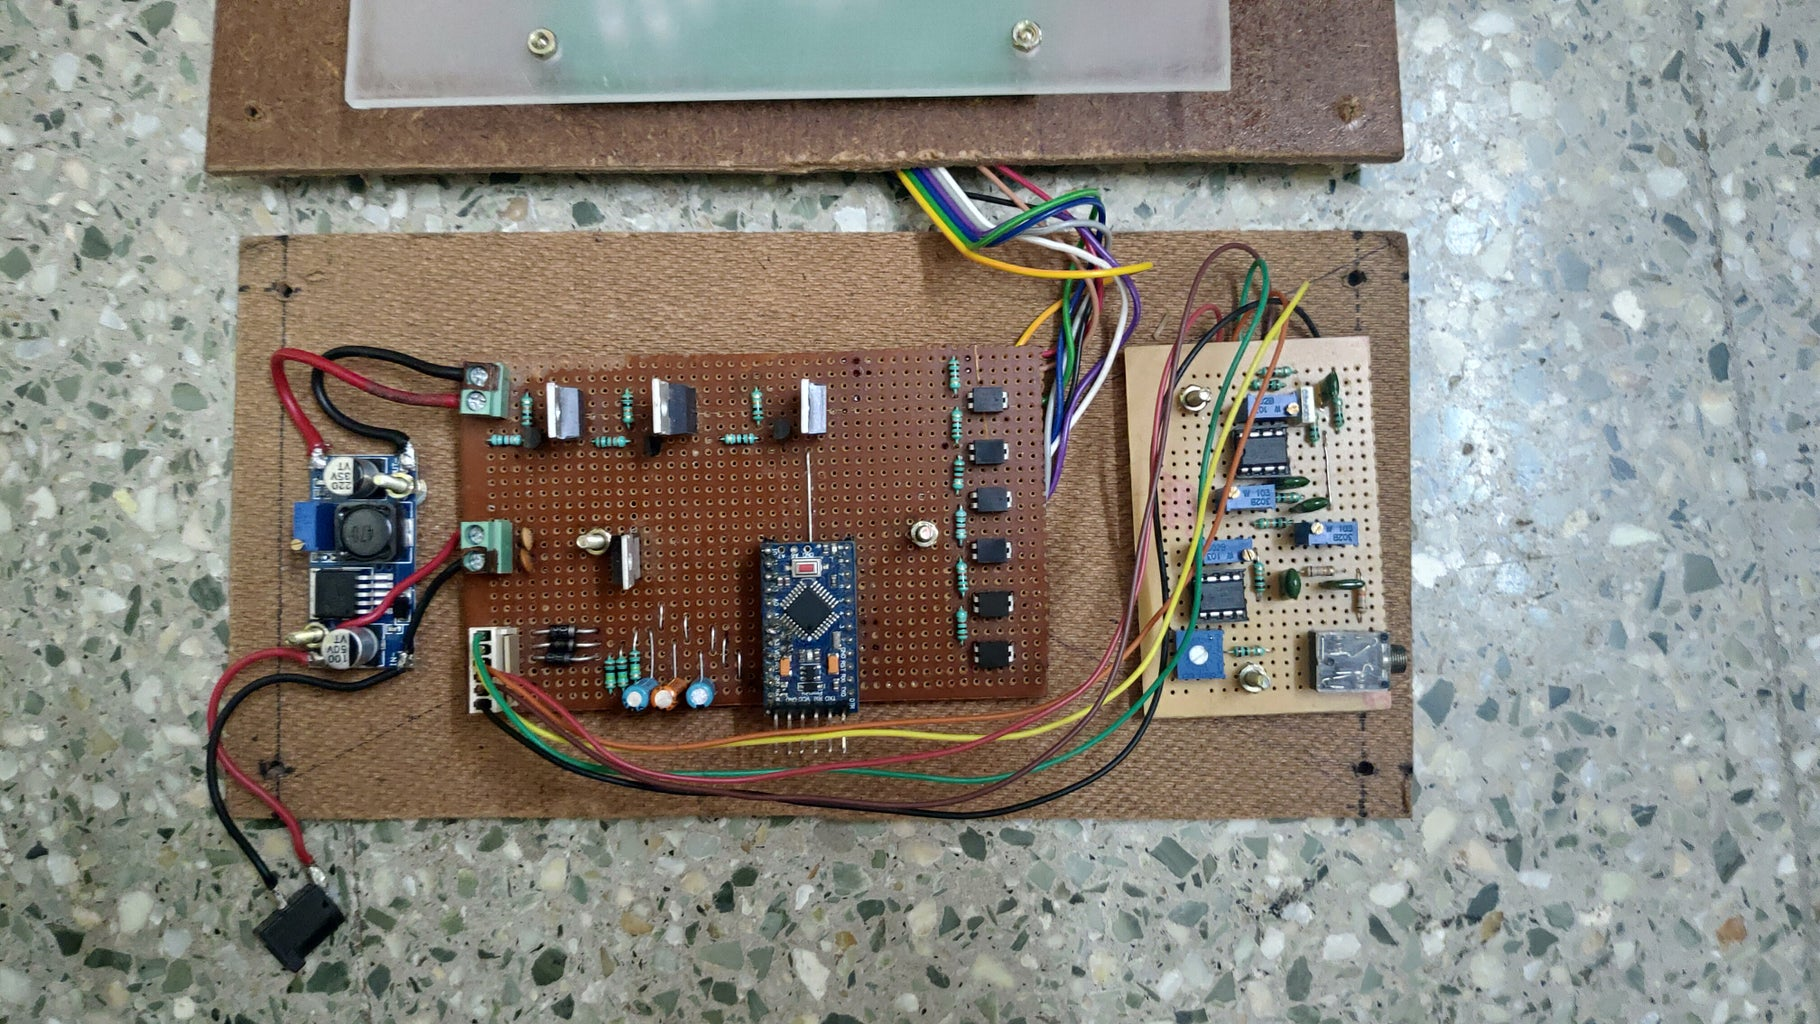 Casing and Wiring.